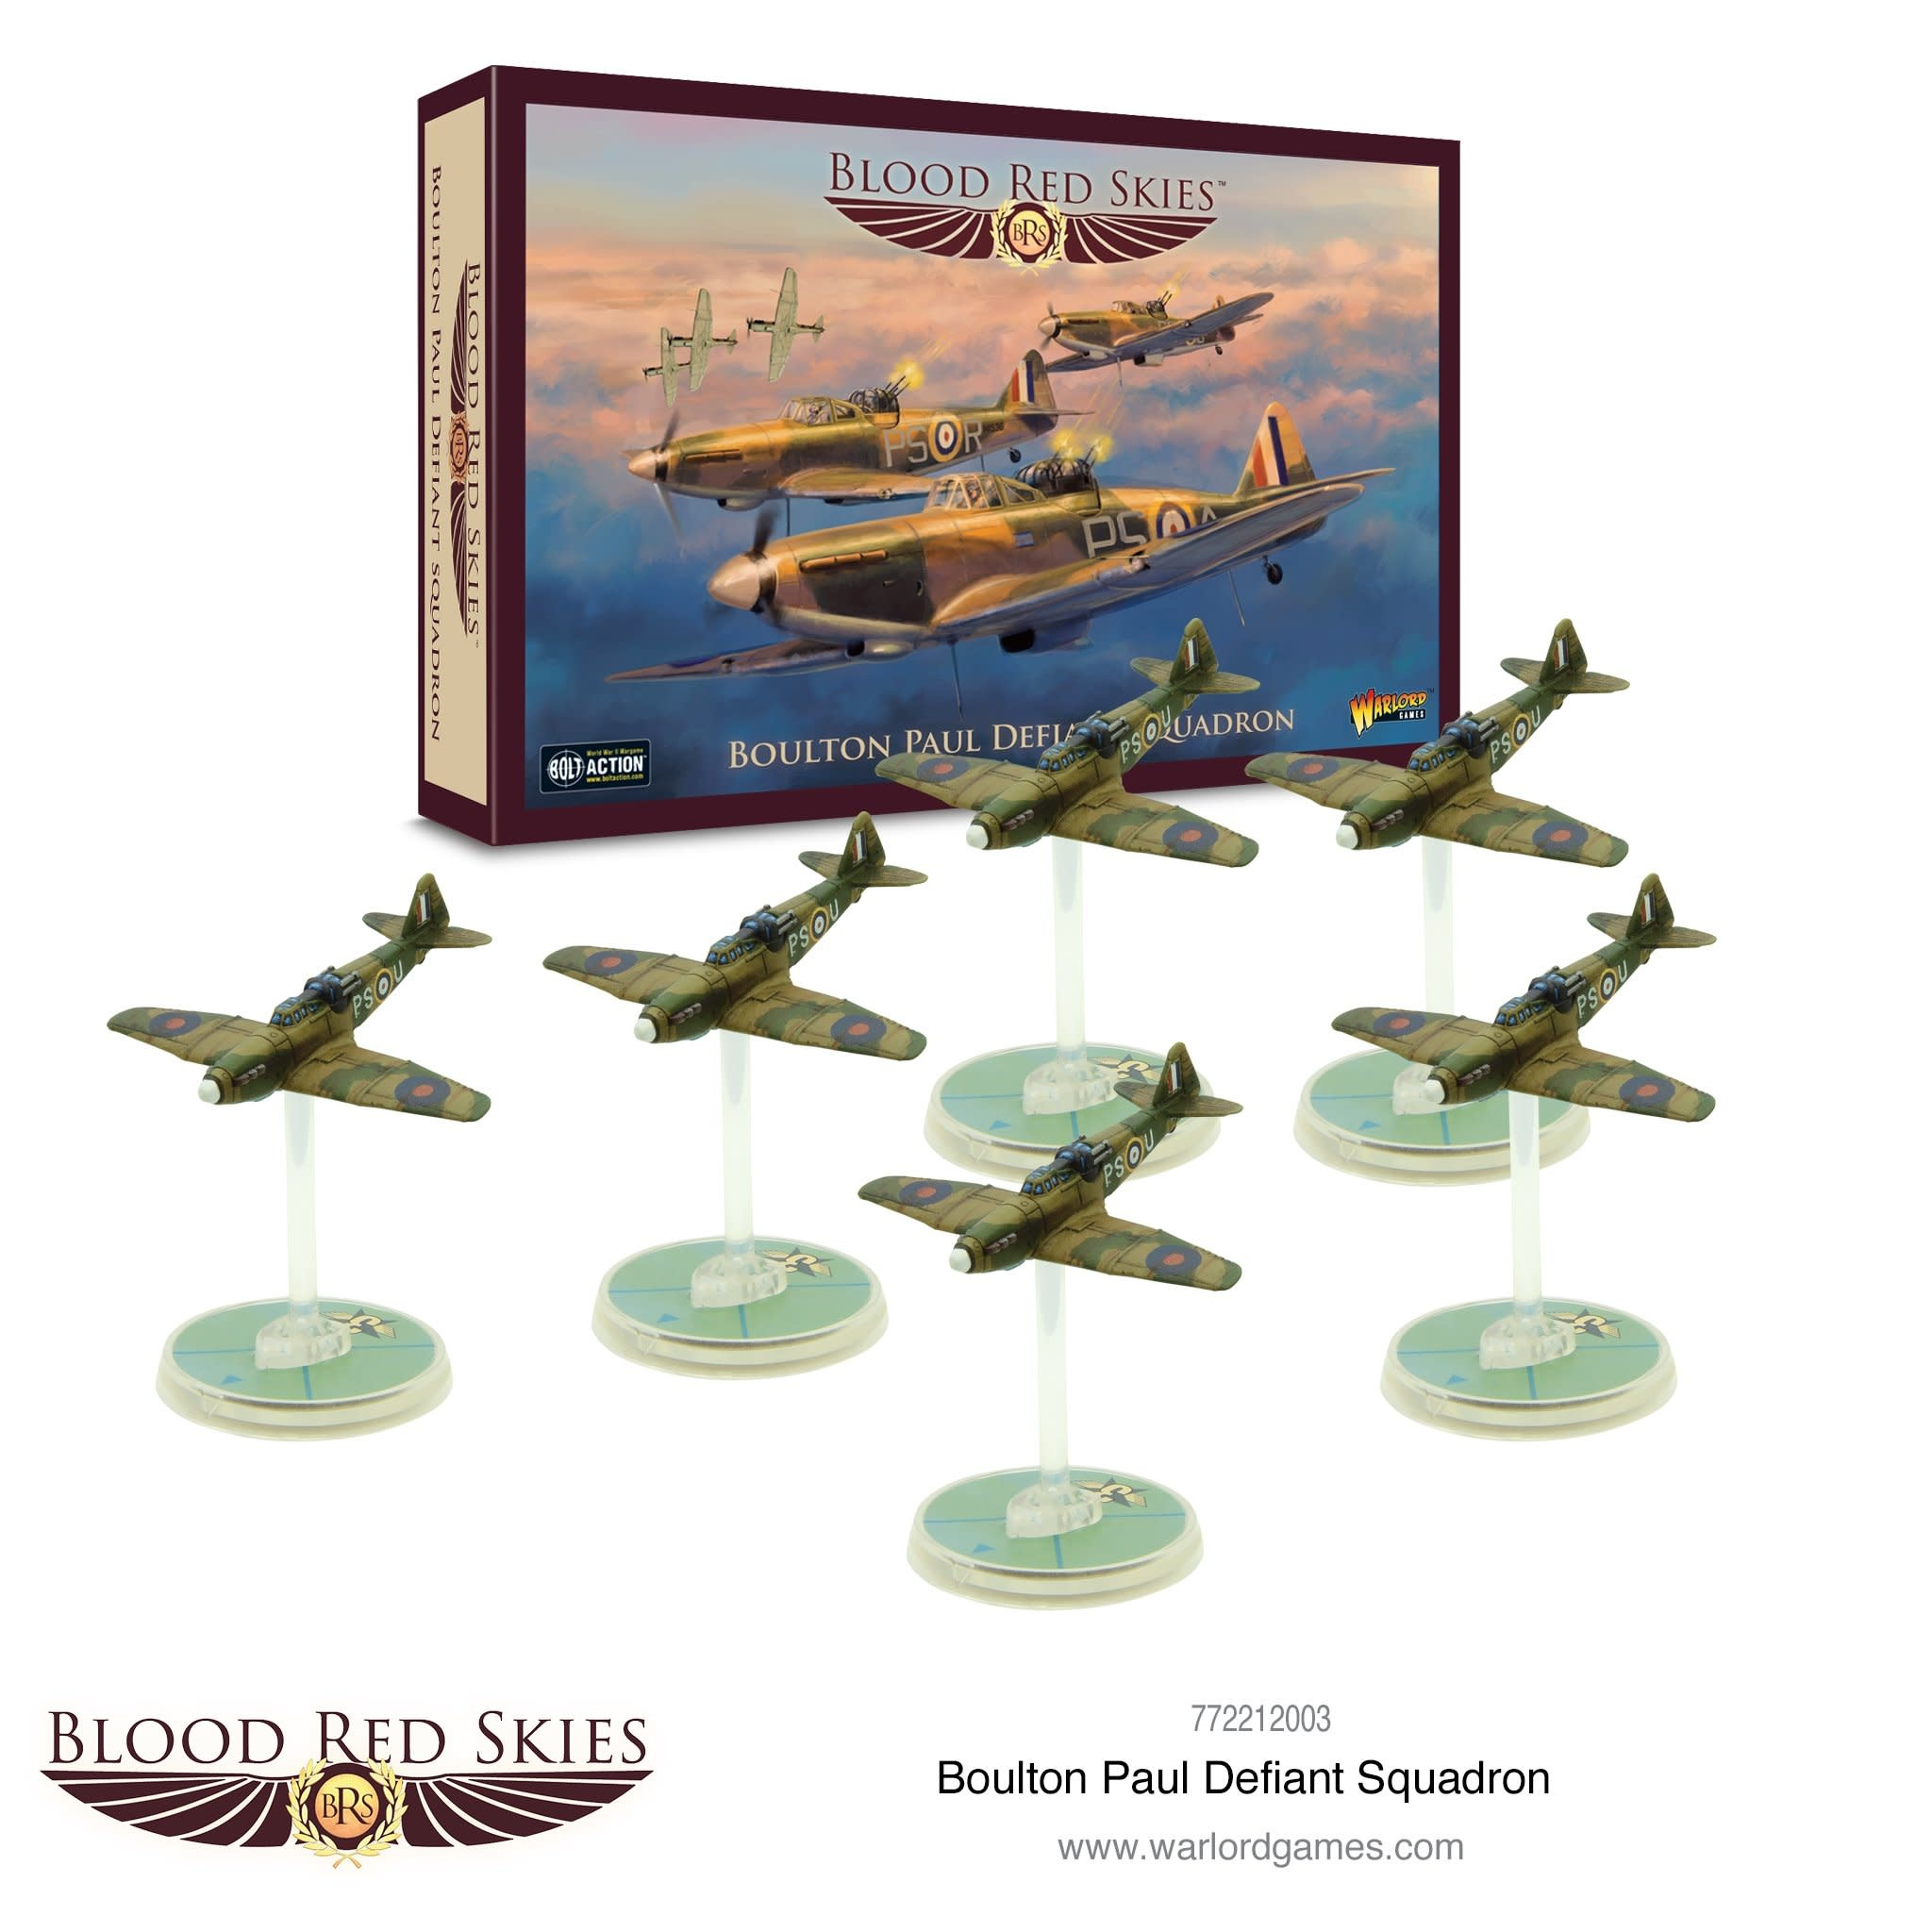 Warlord games Blood Red Skies: Boulton Paul Defiant Squadron